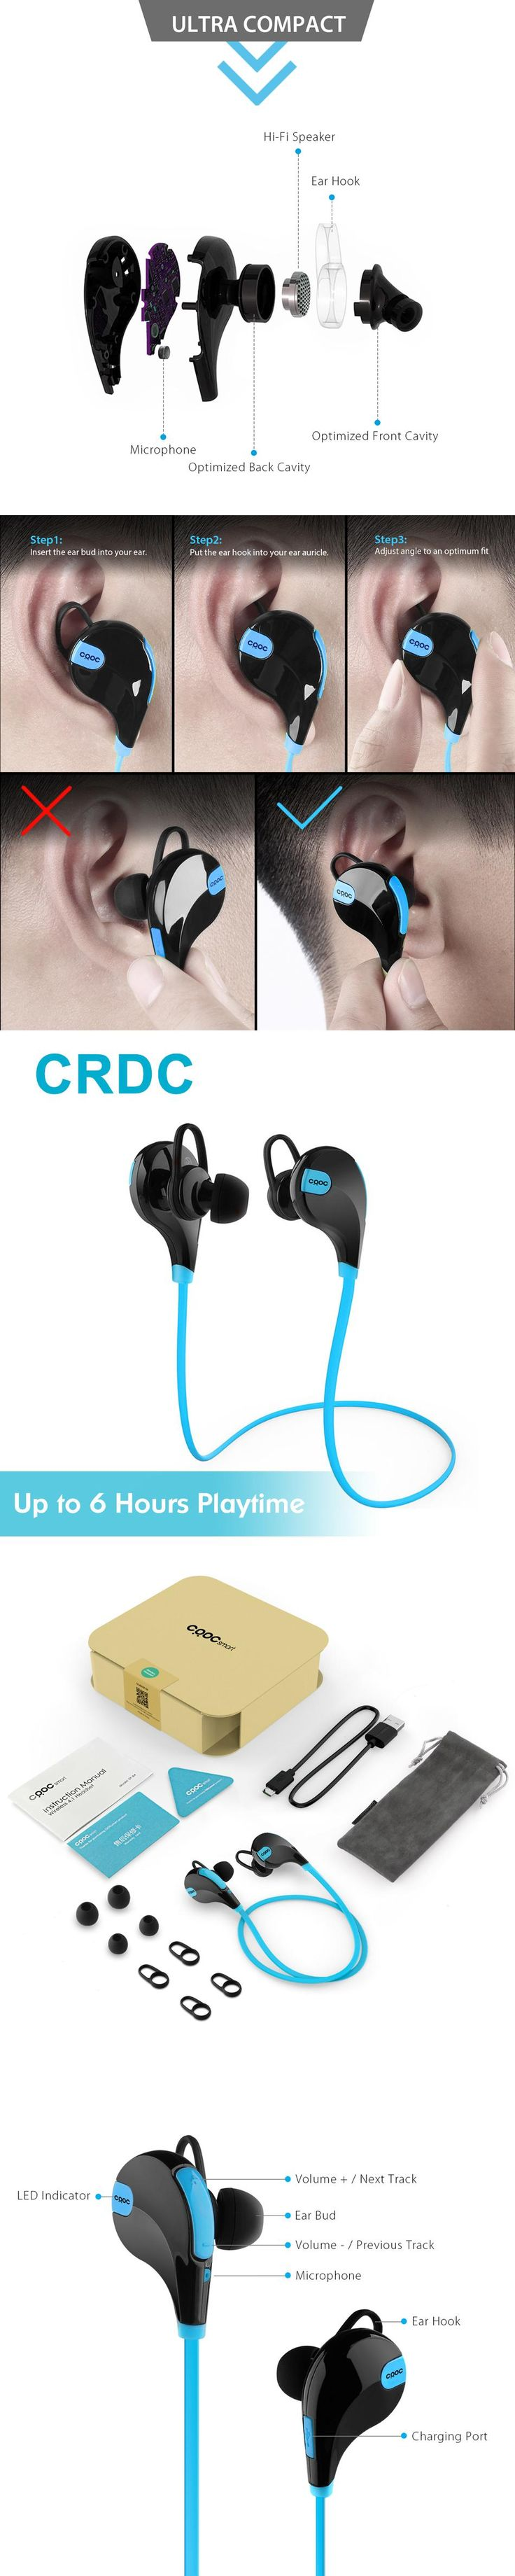 CRDC Bluetooth Headset Sport Wireless Earphones with Mic Noise Cancelling Earbuds Running Bluetooth Headphones For iPhone Xiaomi